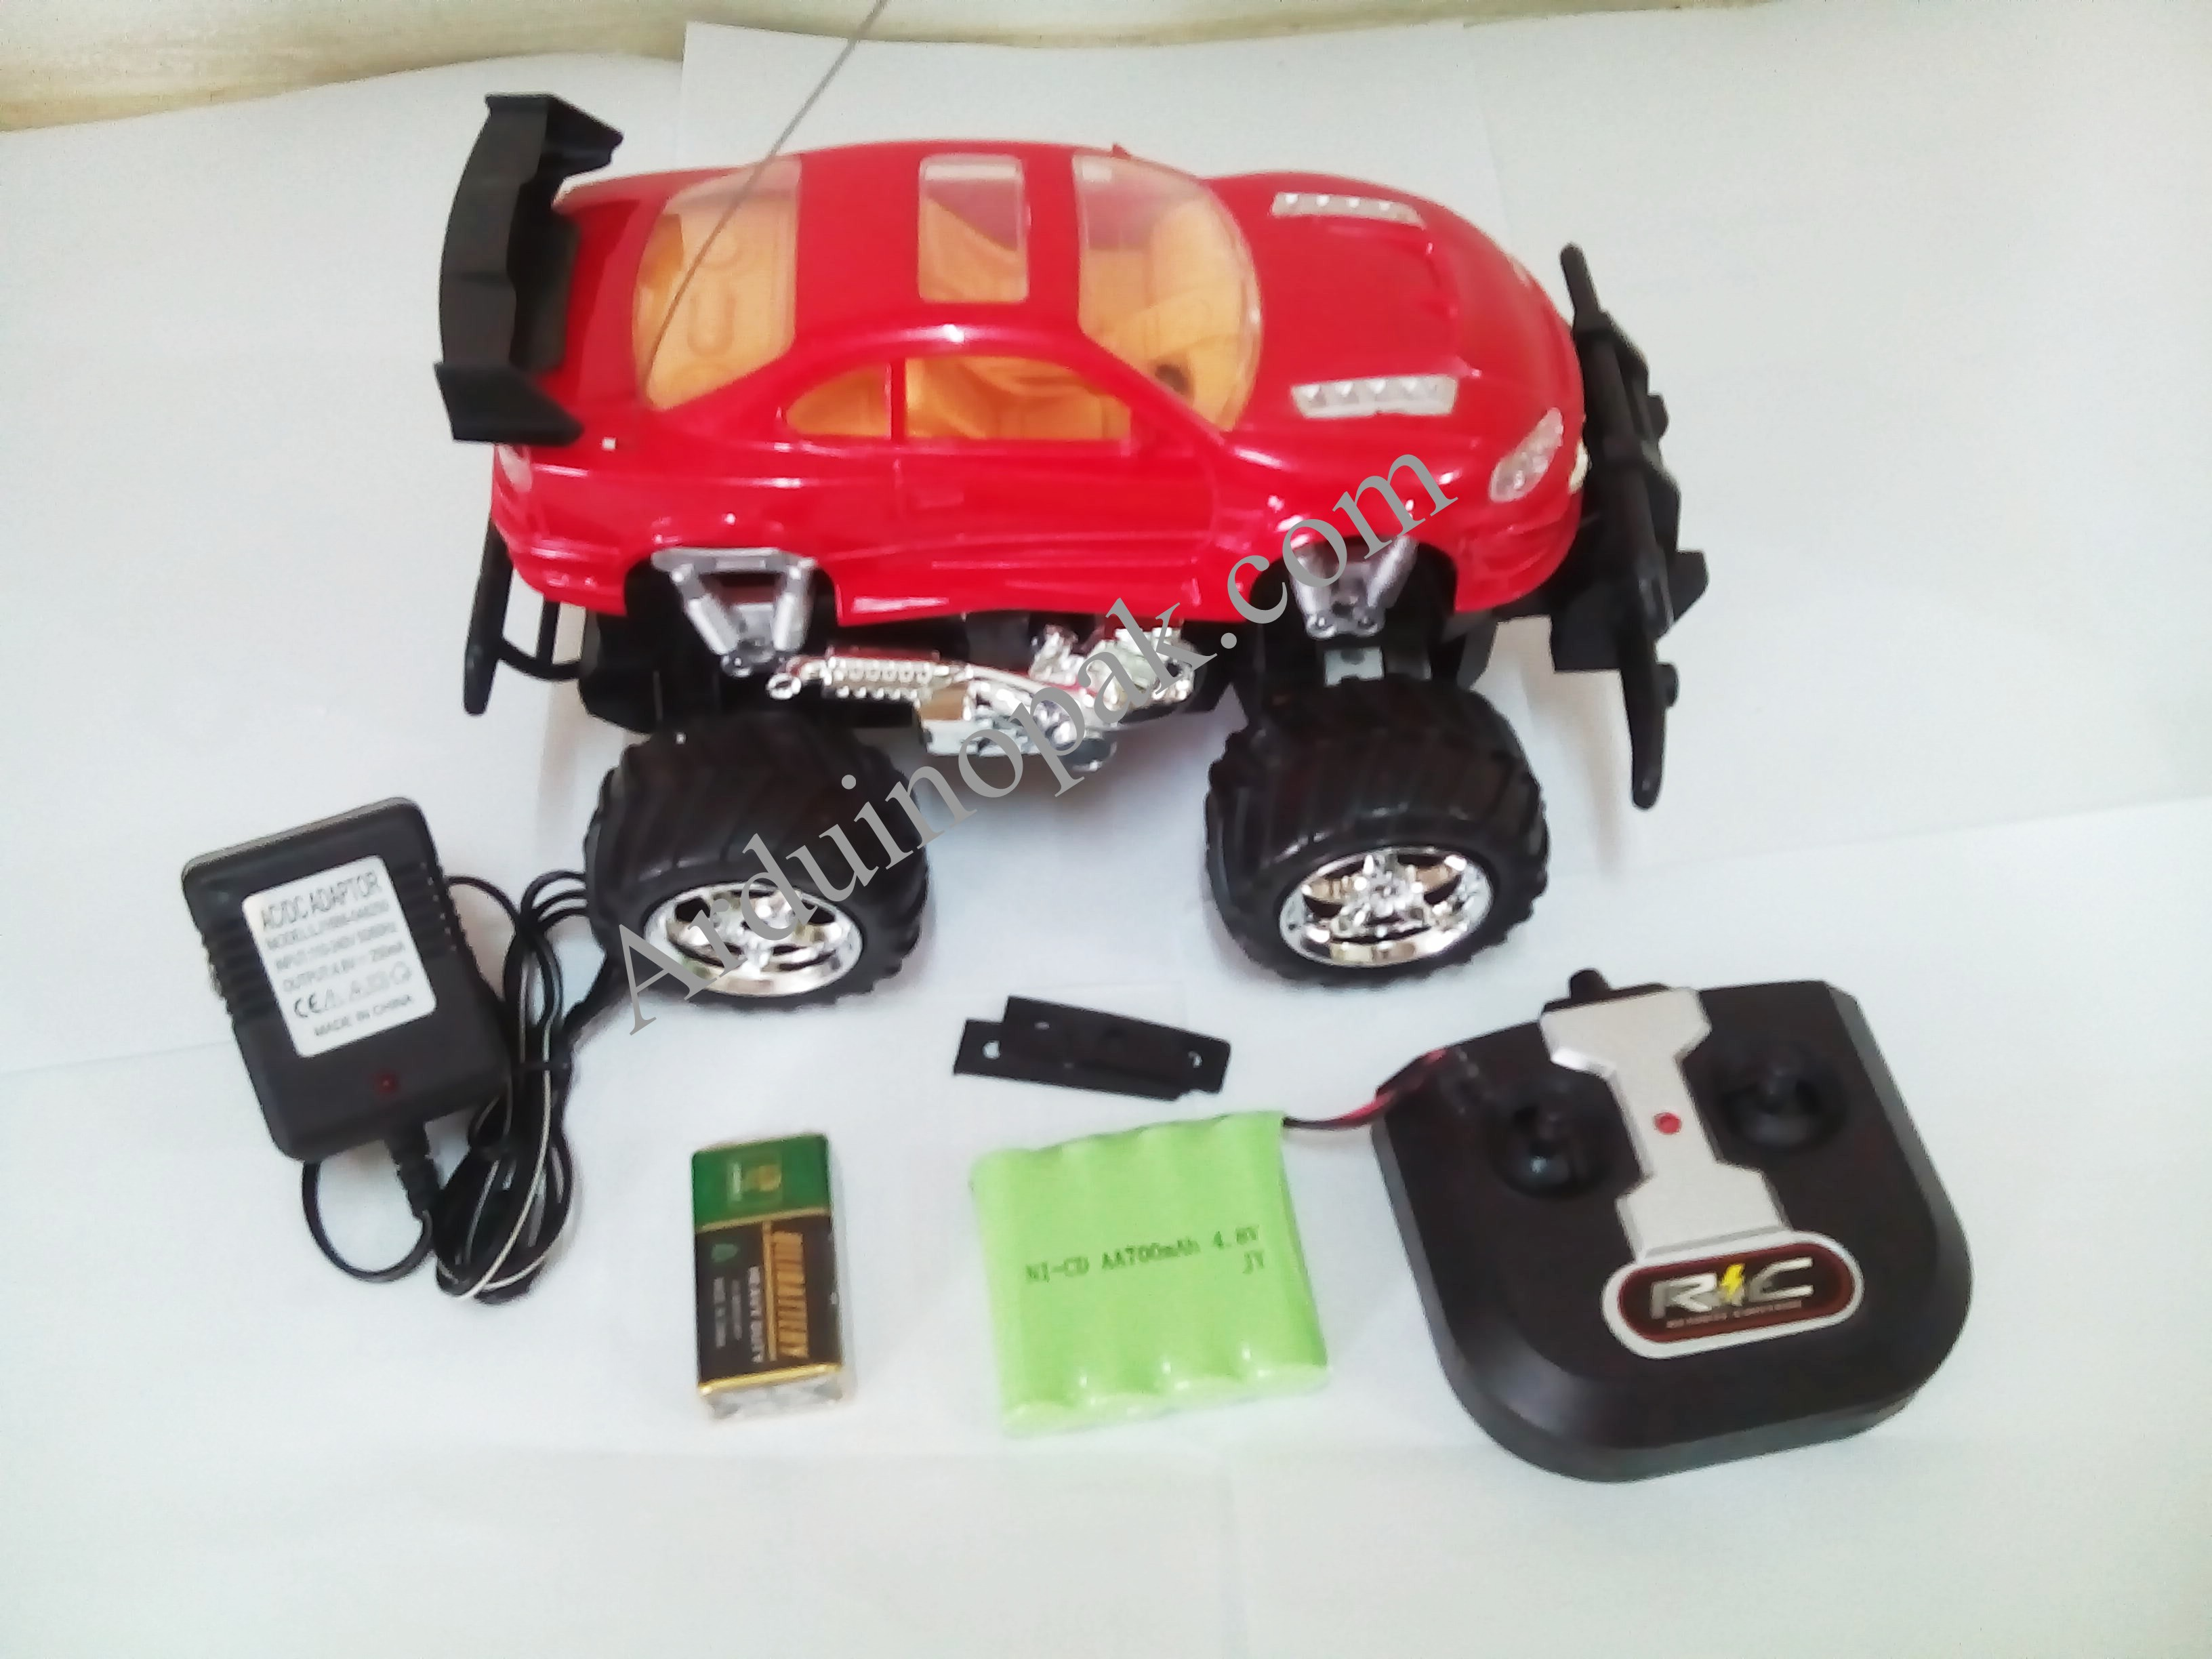 4 chanel rc suv car, 27 MHz, with battery ,Adapter